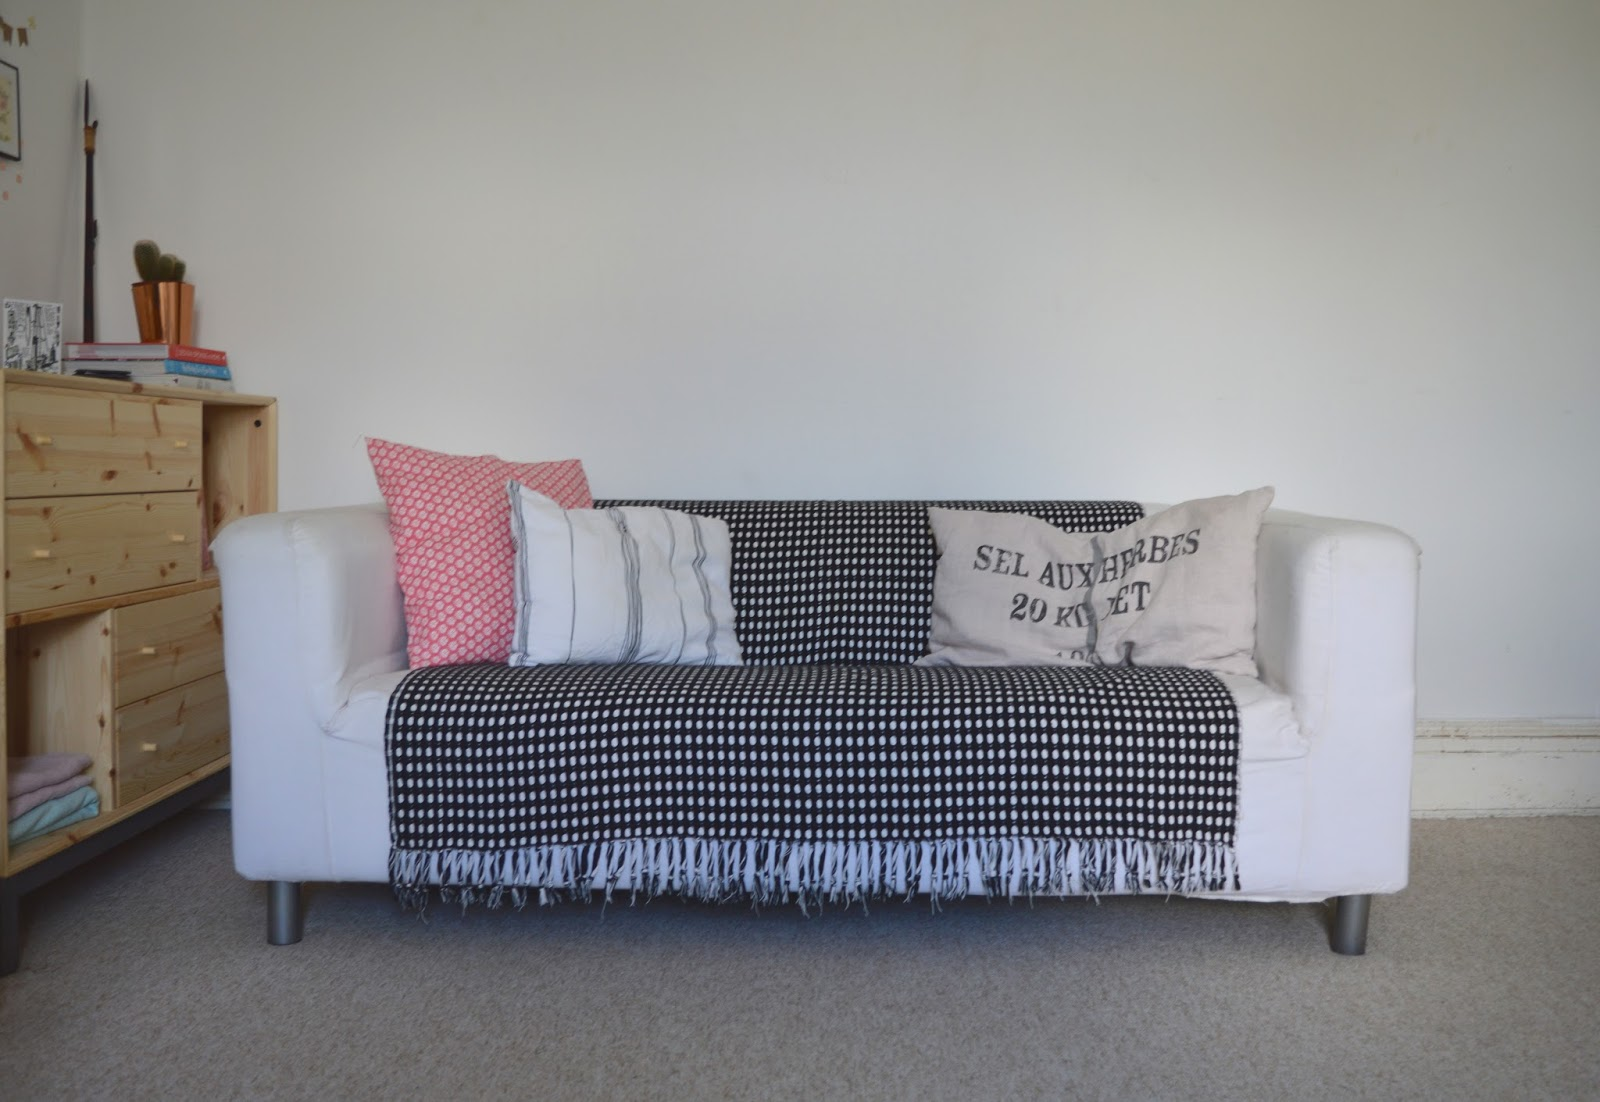 Where Can I Donate My Old Sofa High End Sectional Sofas 3 Steps To Update An Sprunting A Uk